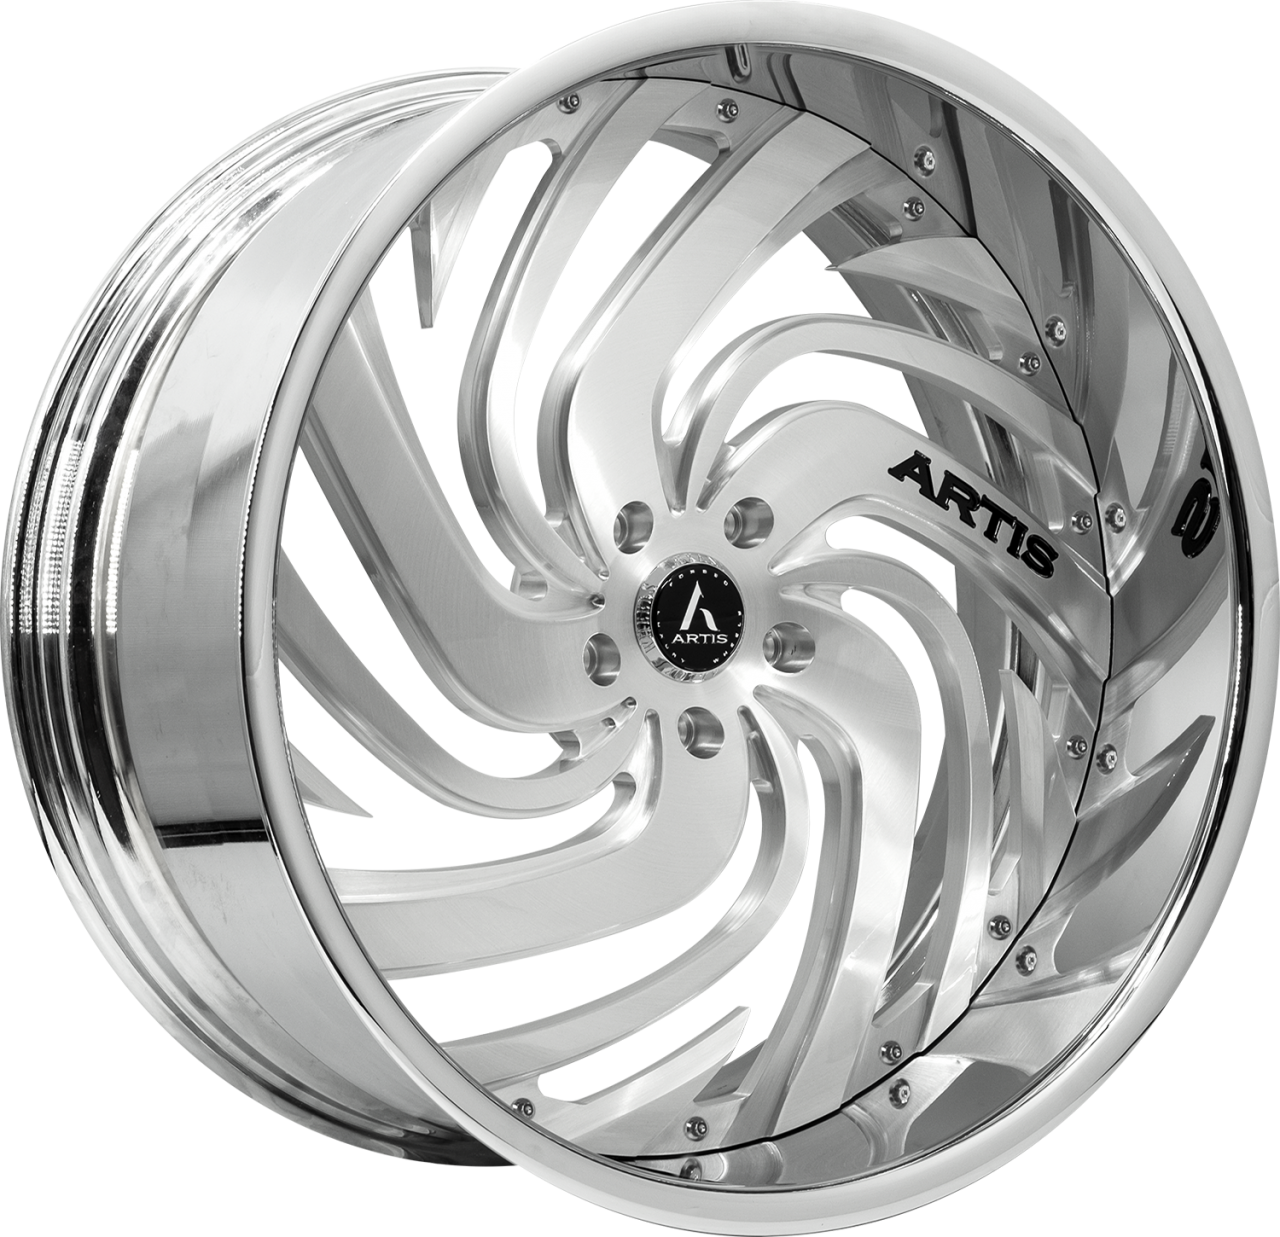 Artis Forged Fillmore wheel with Brushed finish